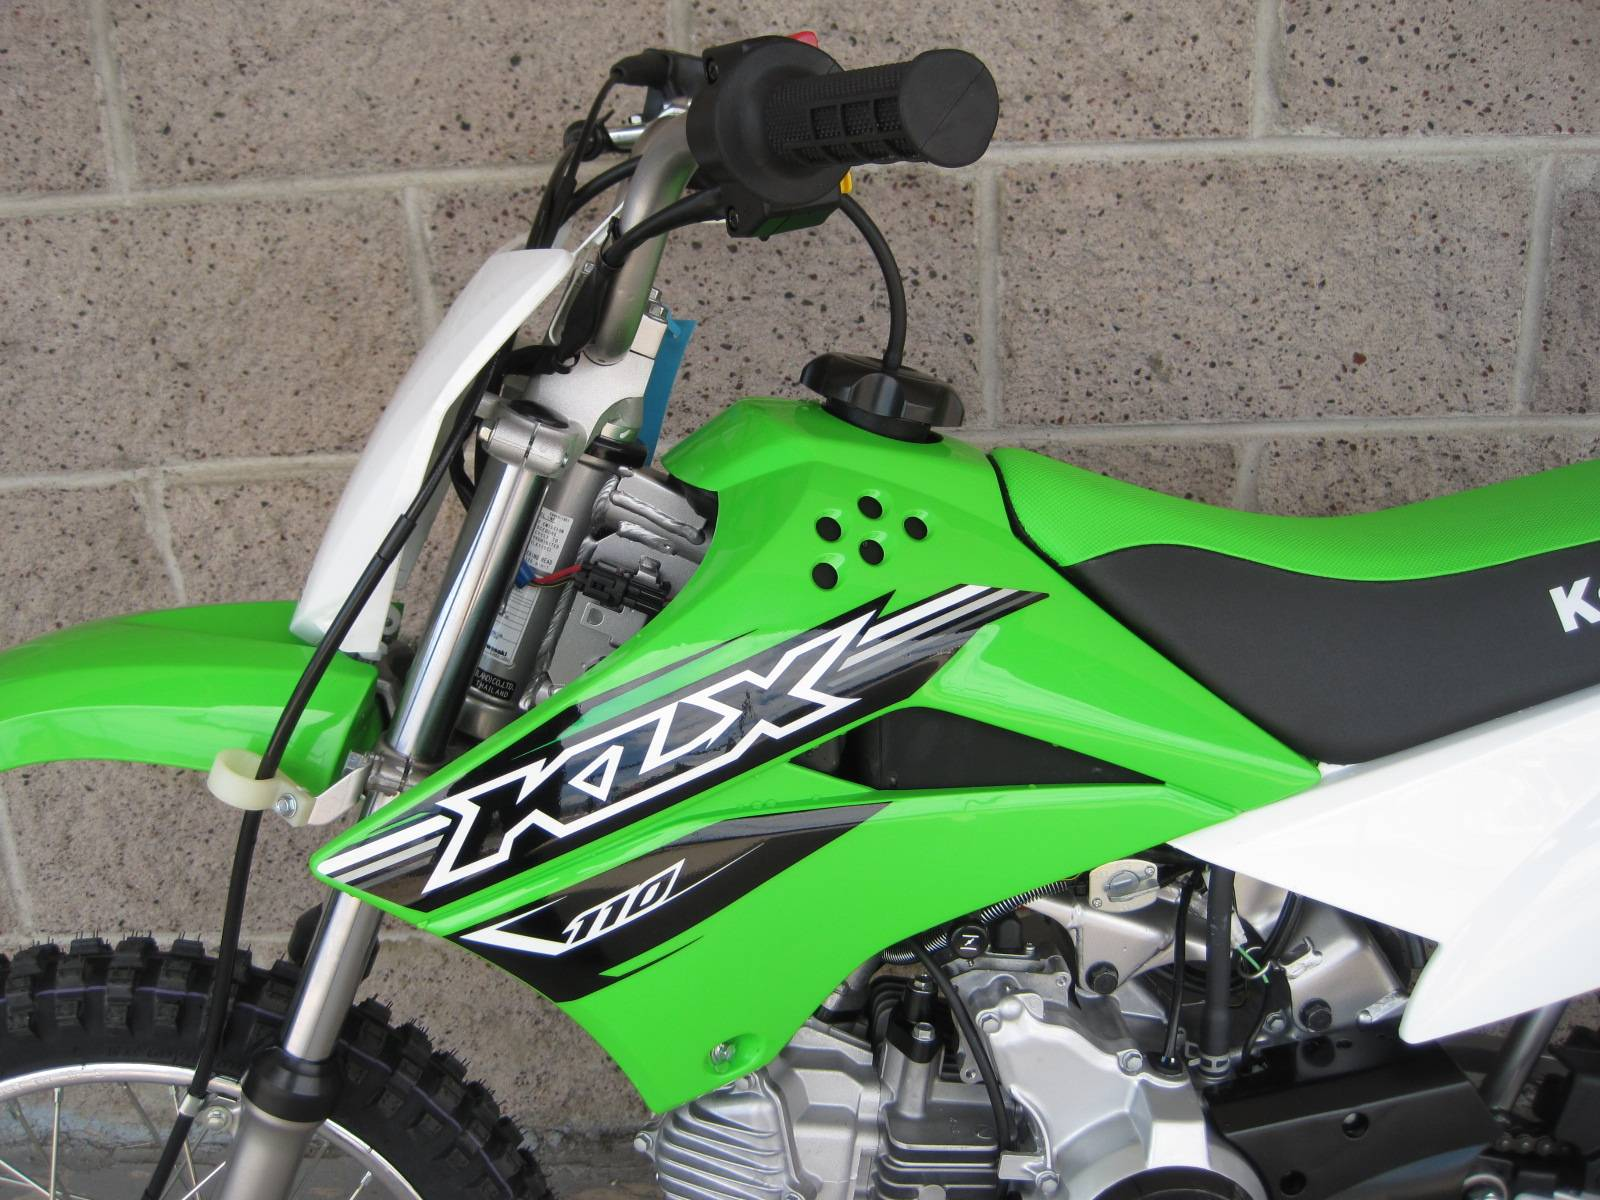 2017 Kawasaki KLX110 in Denver, Colorado